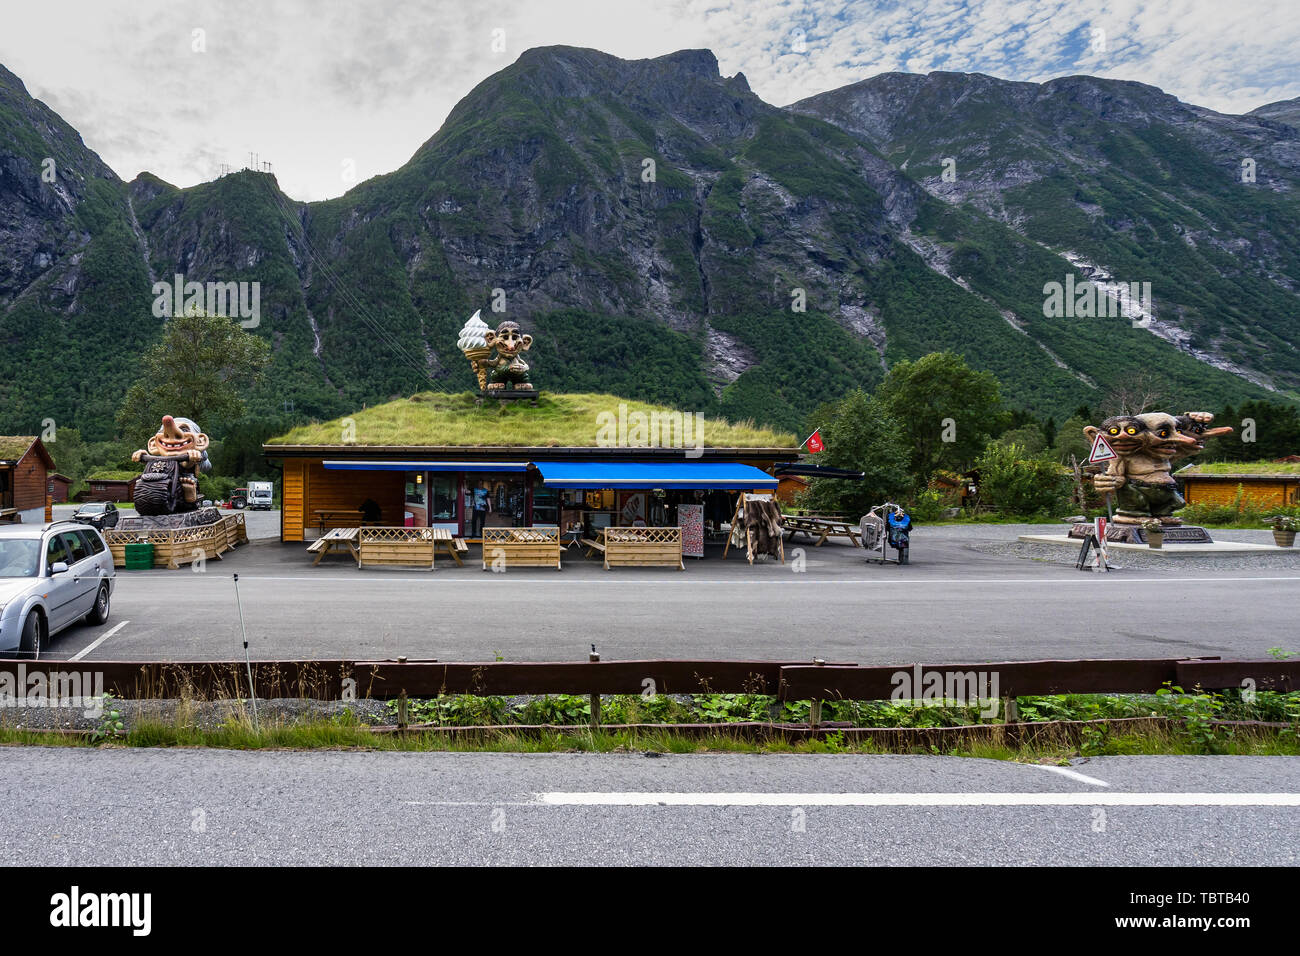 Gift shop with Troll statue on the roof along the famous Trollstigen road. Andalsnes, More og Romsdal, Norway, August 2018 - Stock Image